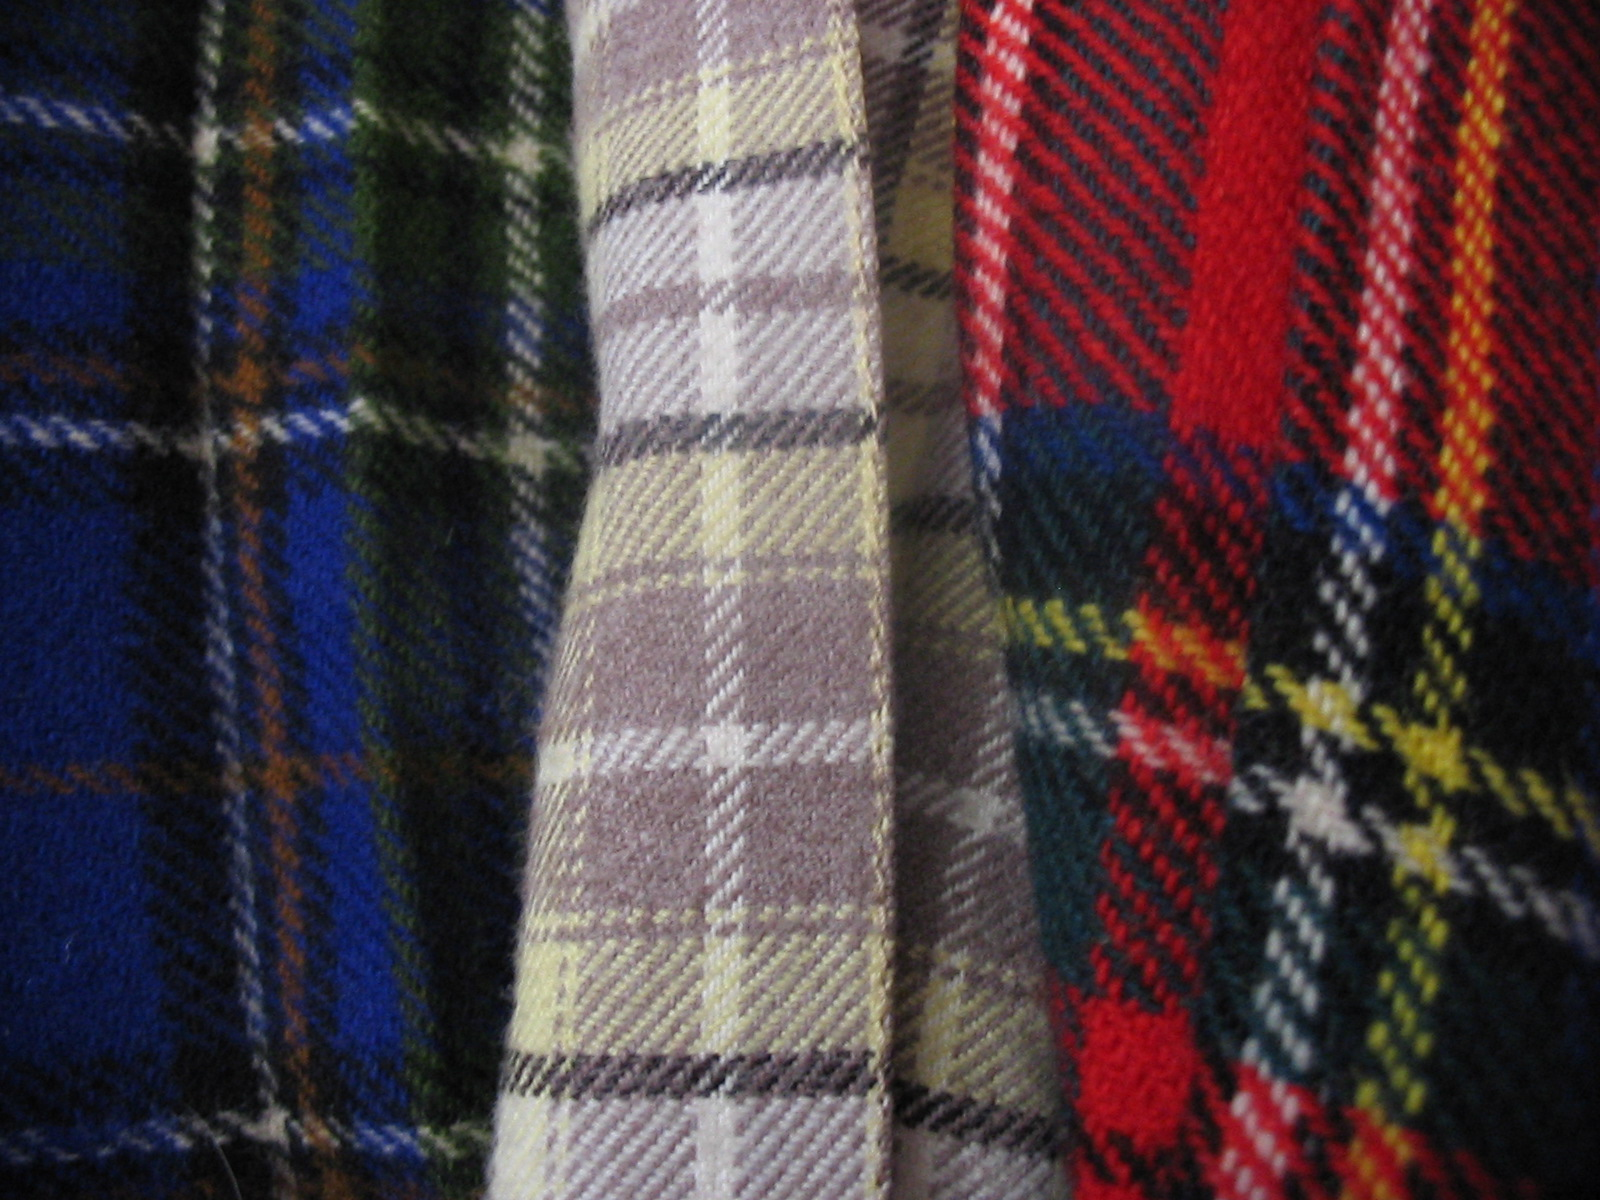 https://i0.wp.com/upload.wikimedia.org/wikipedia/commons/0/0d/Three_tartans.jpg